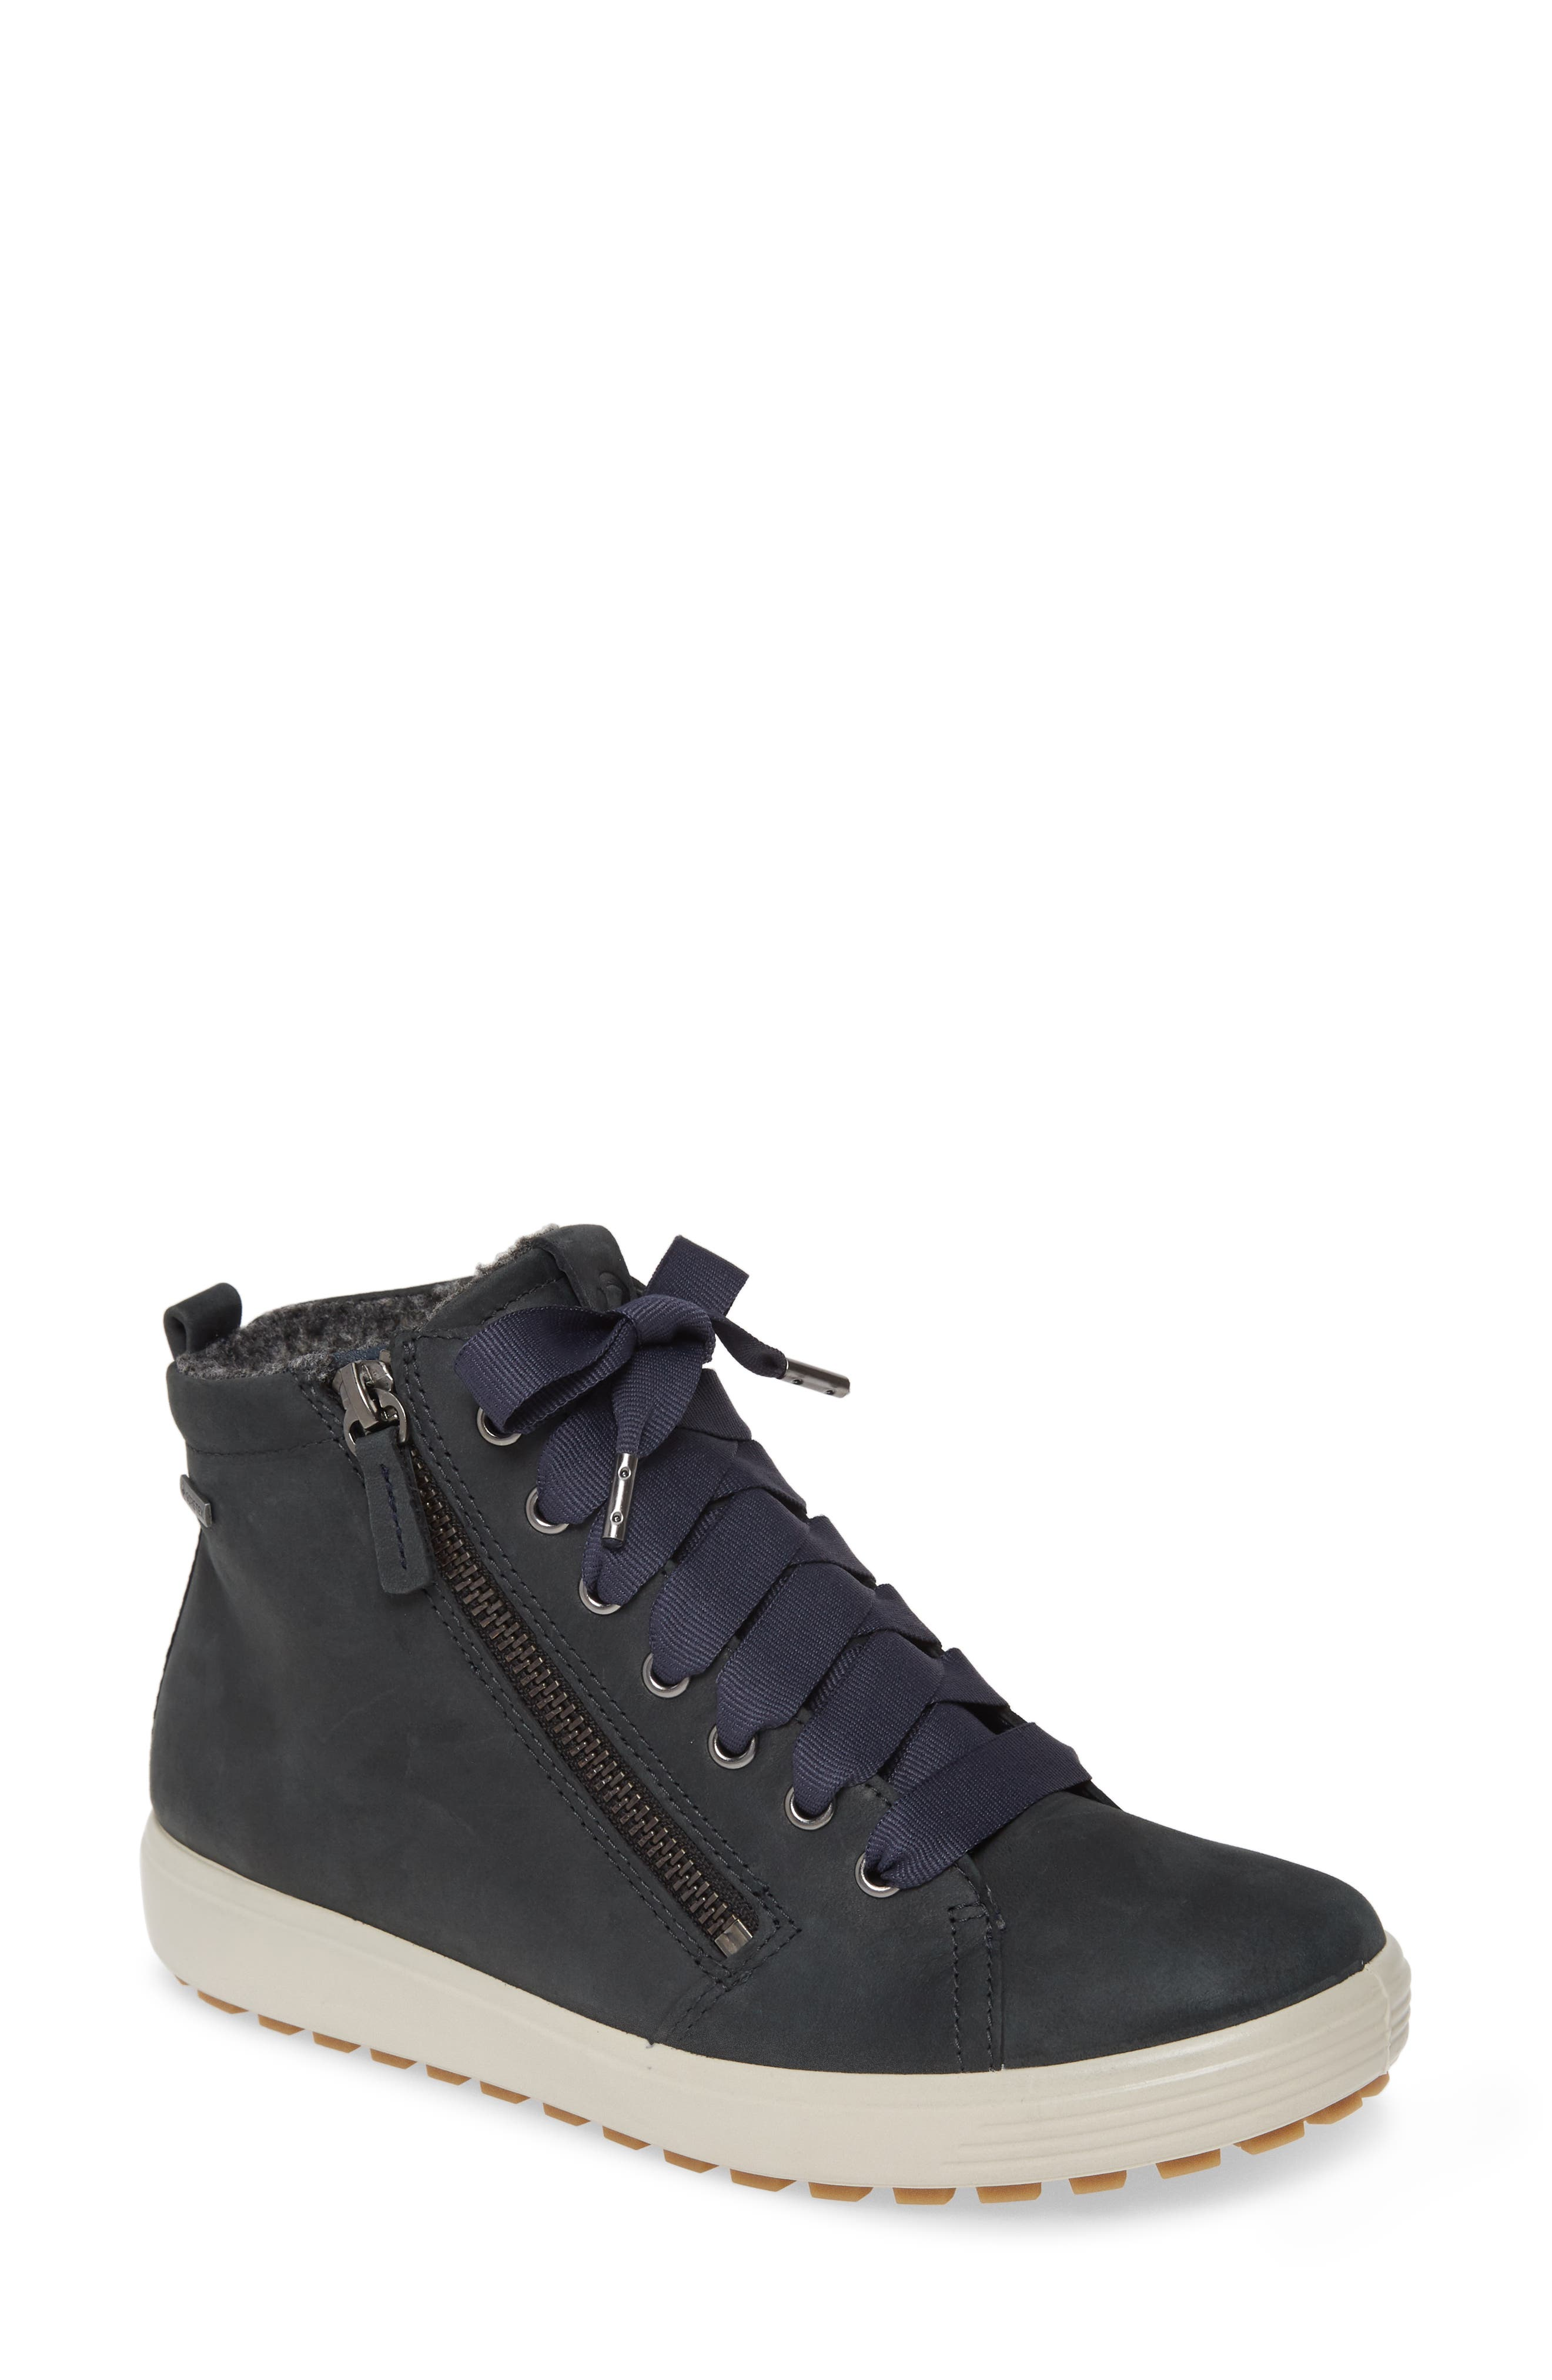 nordstrom ecco womens shoes